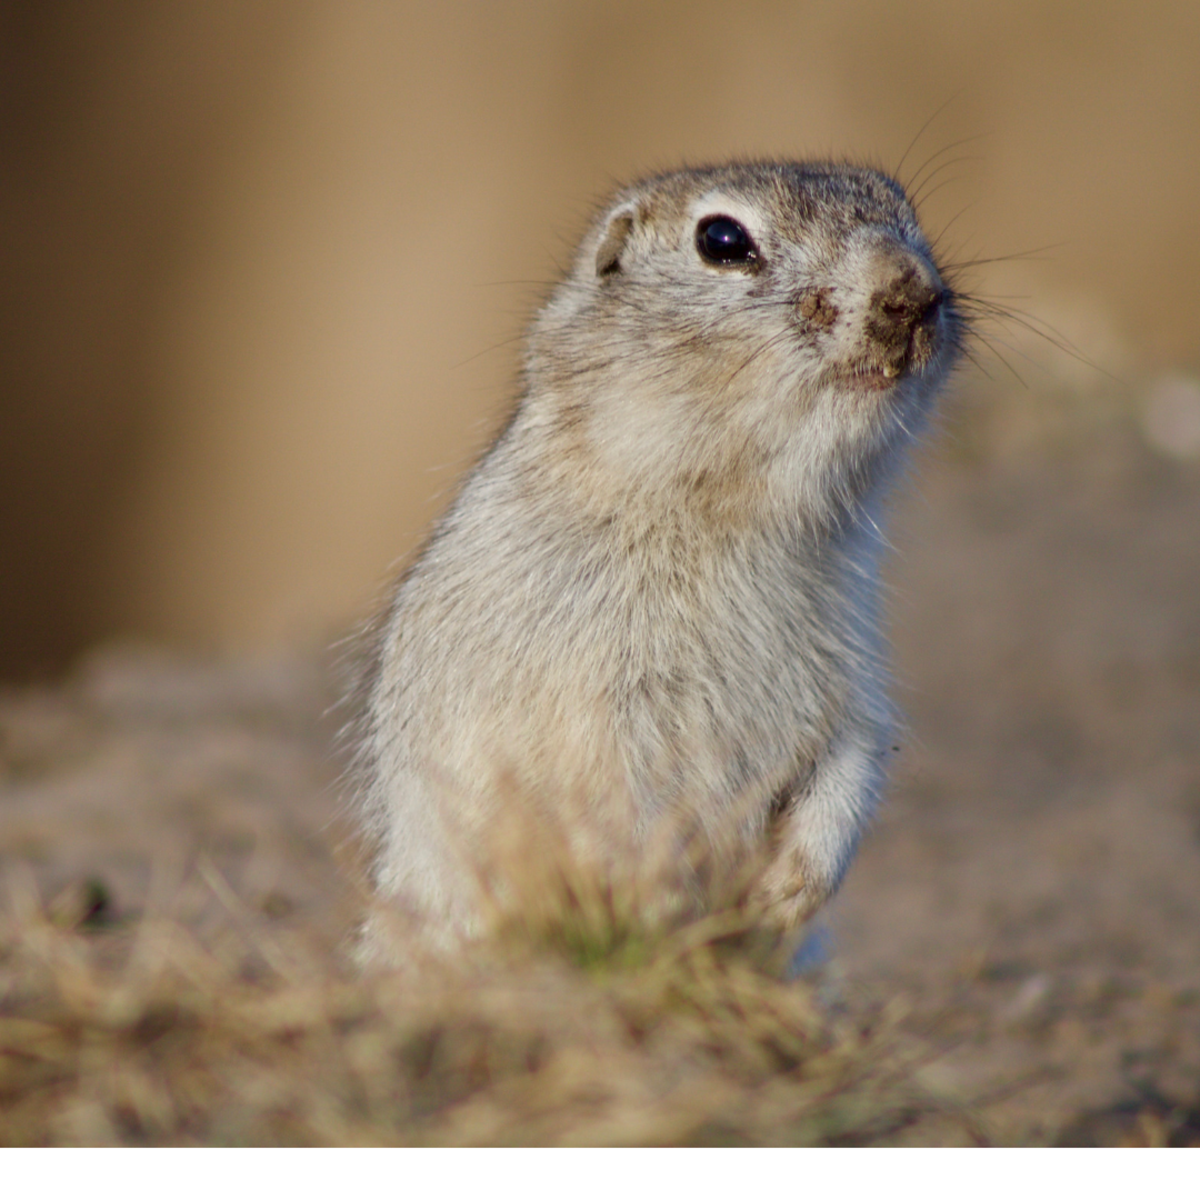 Coyotes offer free rodent control as they naturally predate on ground squirrels, gophers, etc.